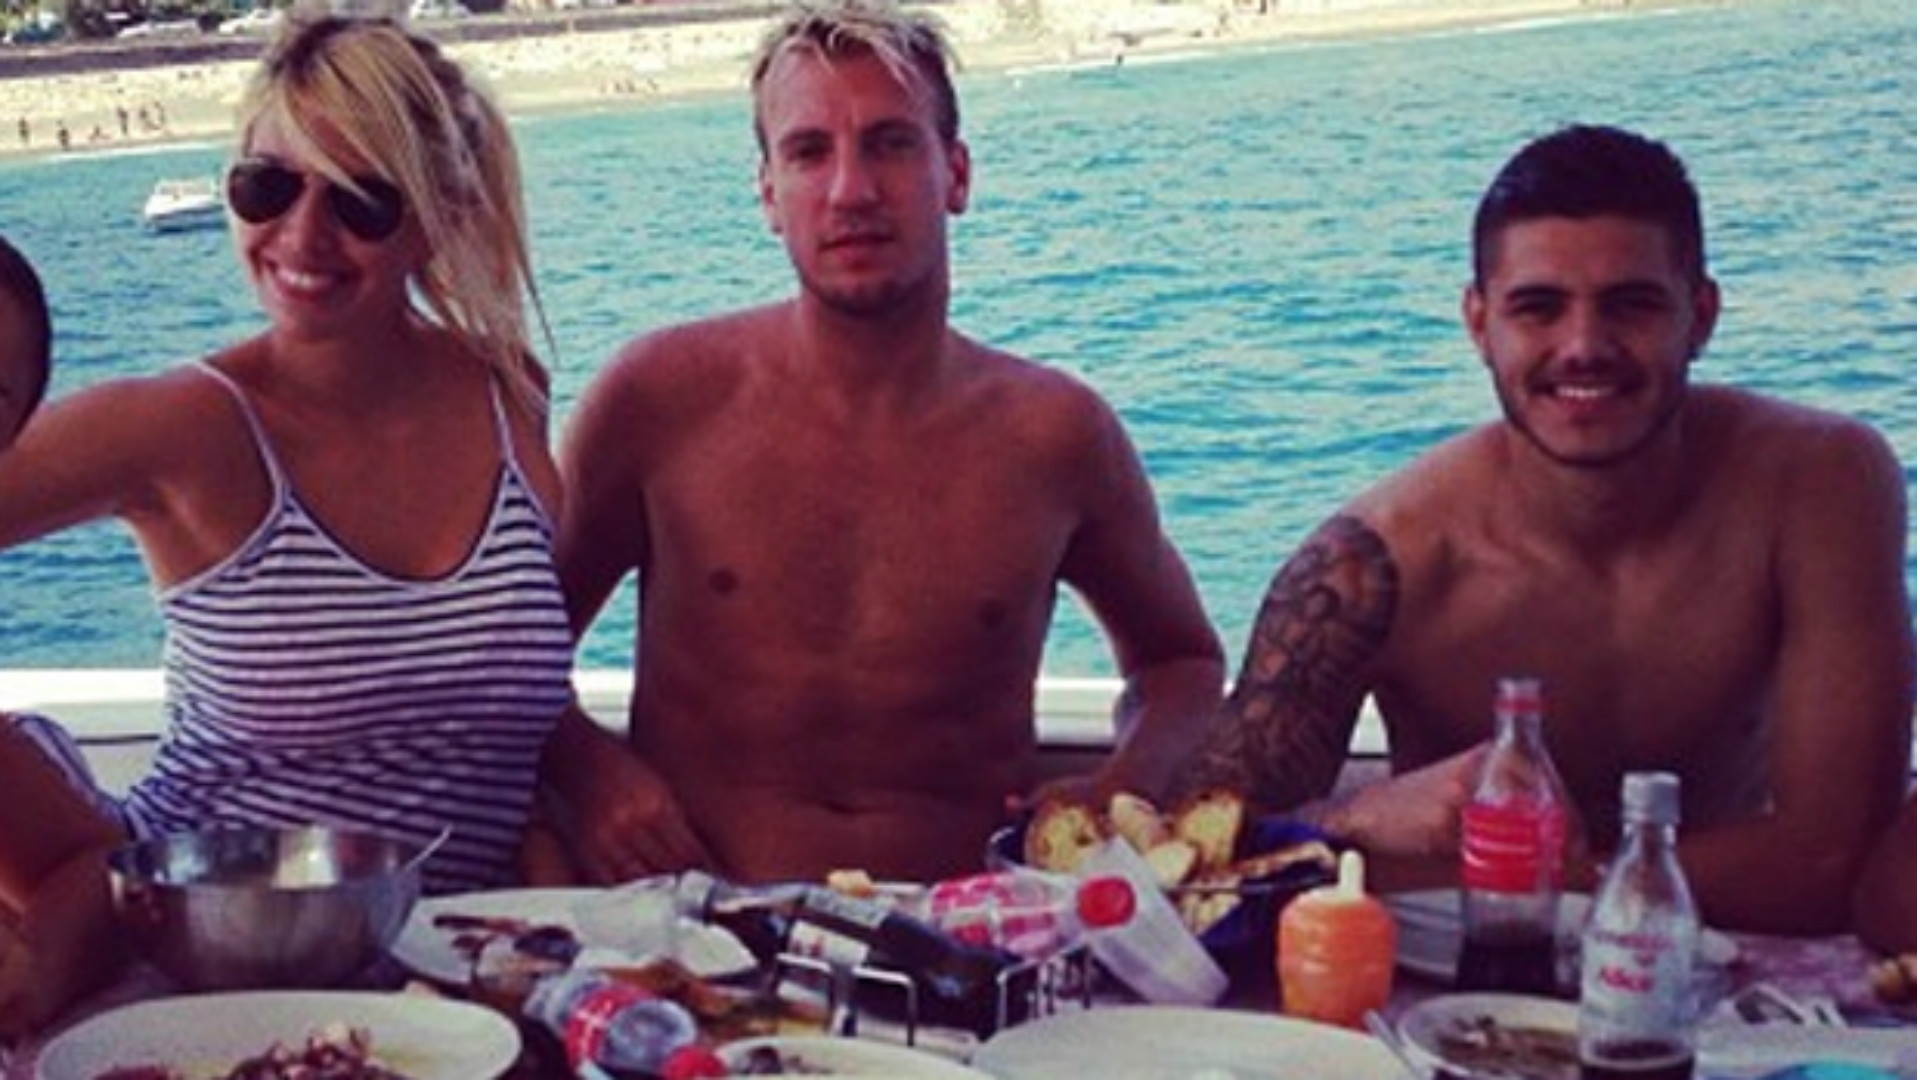 Icardi having a picnic with the Lopez family before the breakup and betrayal